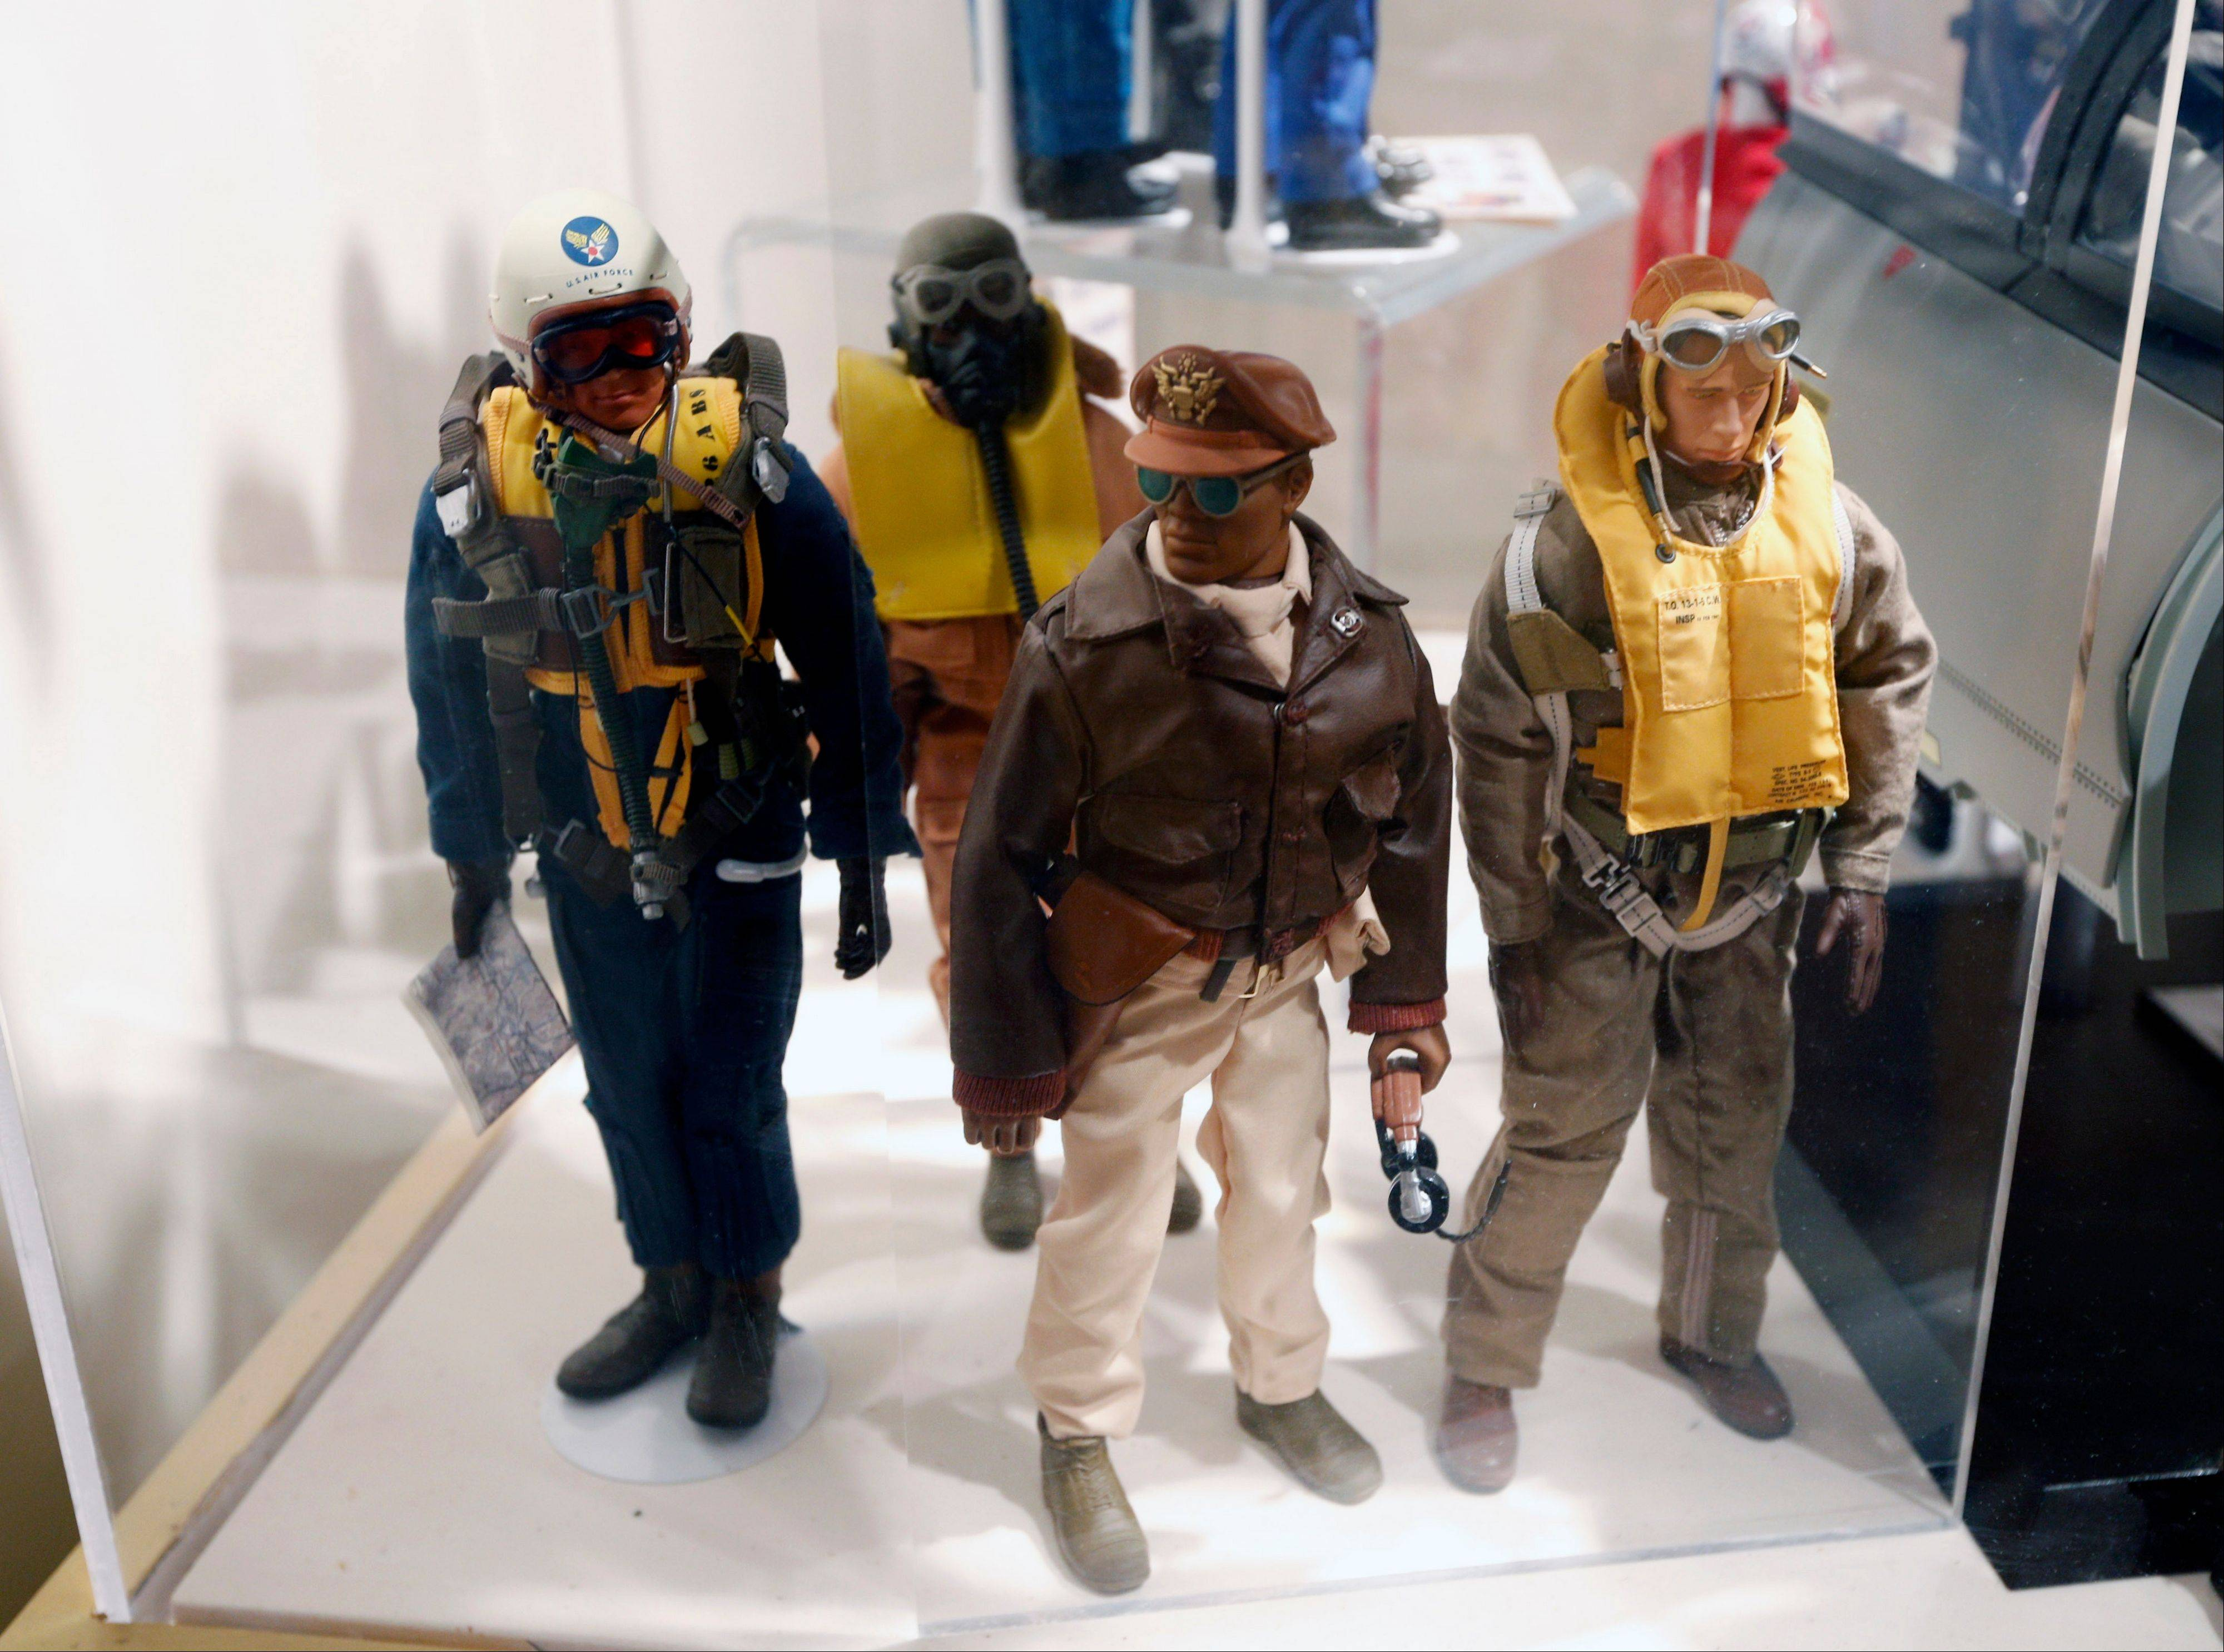 Tuskegee Airmen G.I. Joe action figures are seen in a display at the New York State Military Museum in Saratoga Springs, N.Y. A half-century after the 12-inch doll was introduced at a New York City toy fair, the iconic action figure is being celebrated by collectors with a display at the military museum, while the toy's maker plans other anniversary events to be announced later this month.